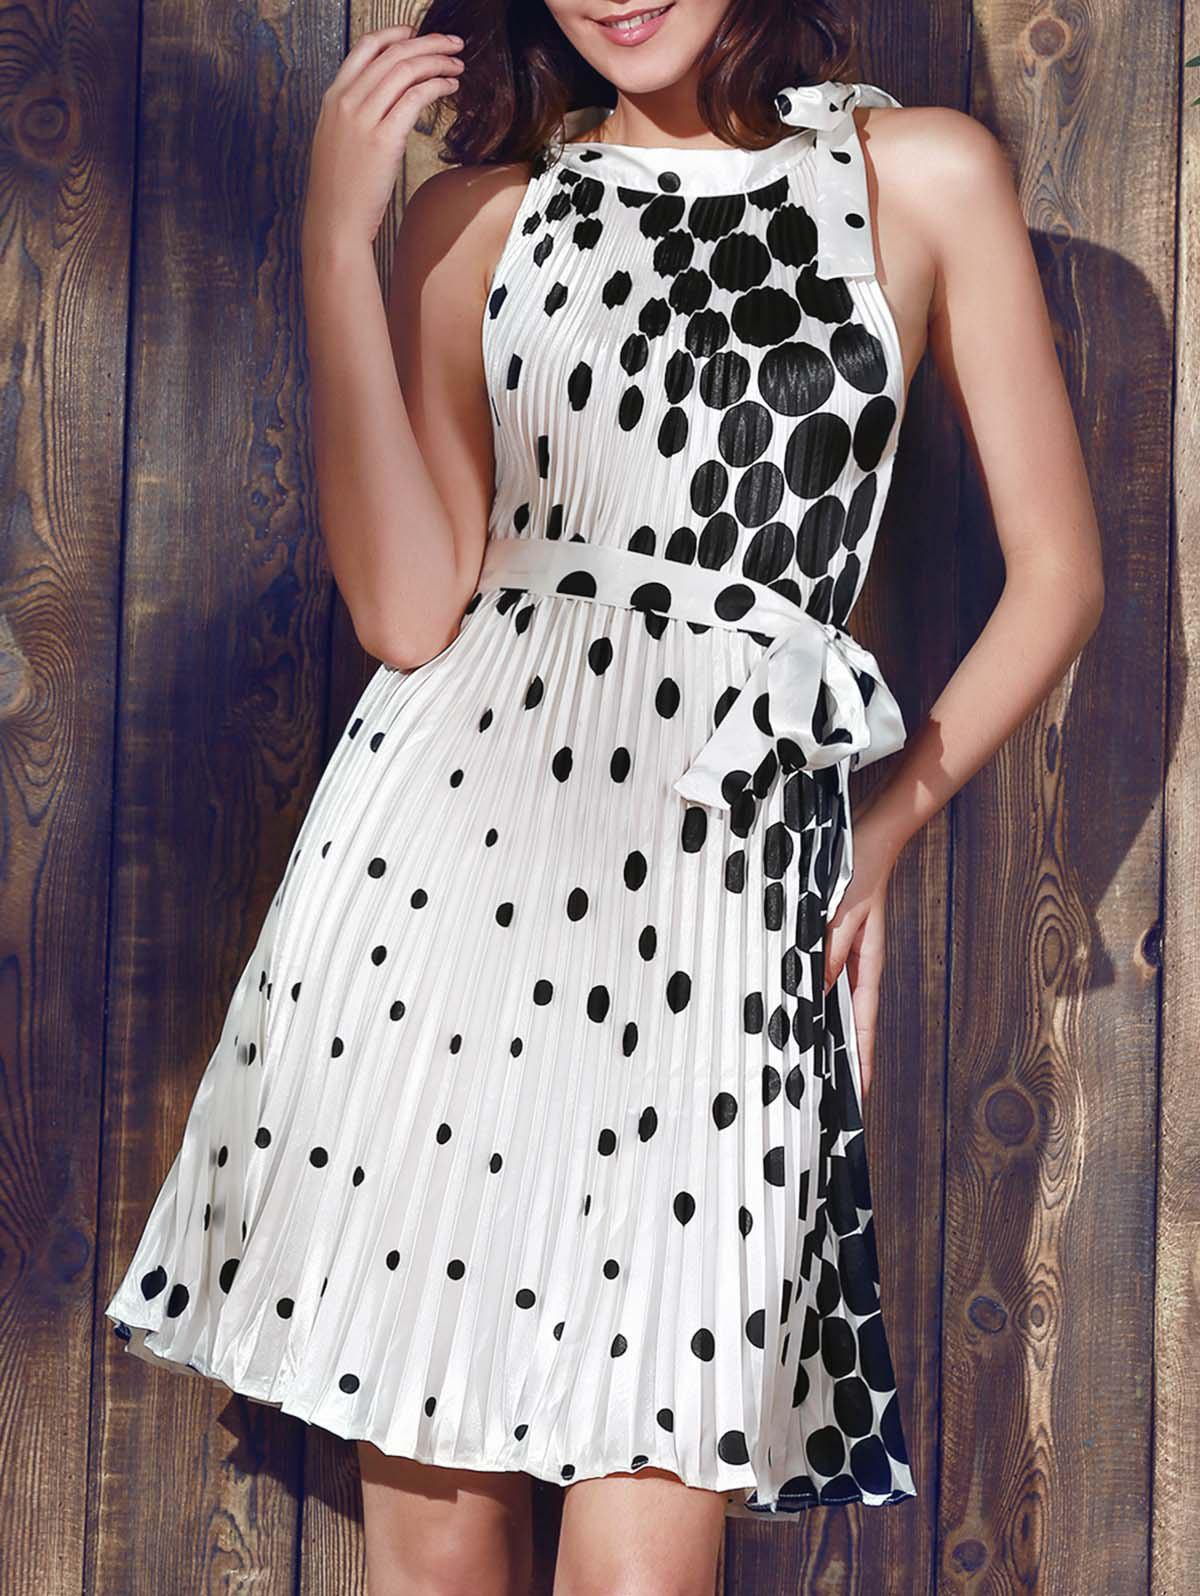 Vintage Round Collar Sleeveless Polka Dot Pleated Women's Dress - WHITE XL